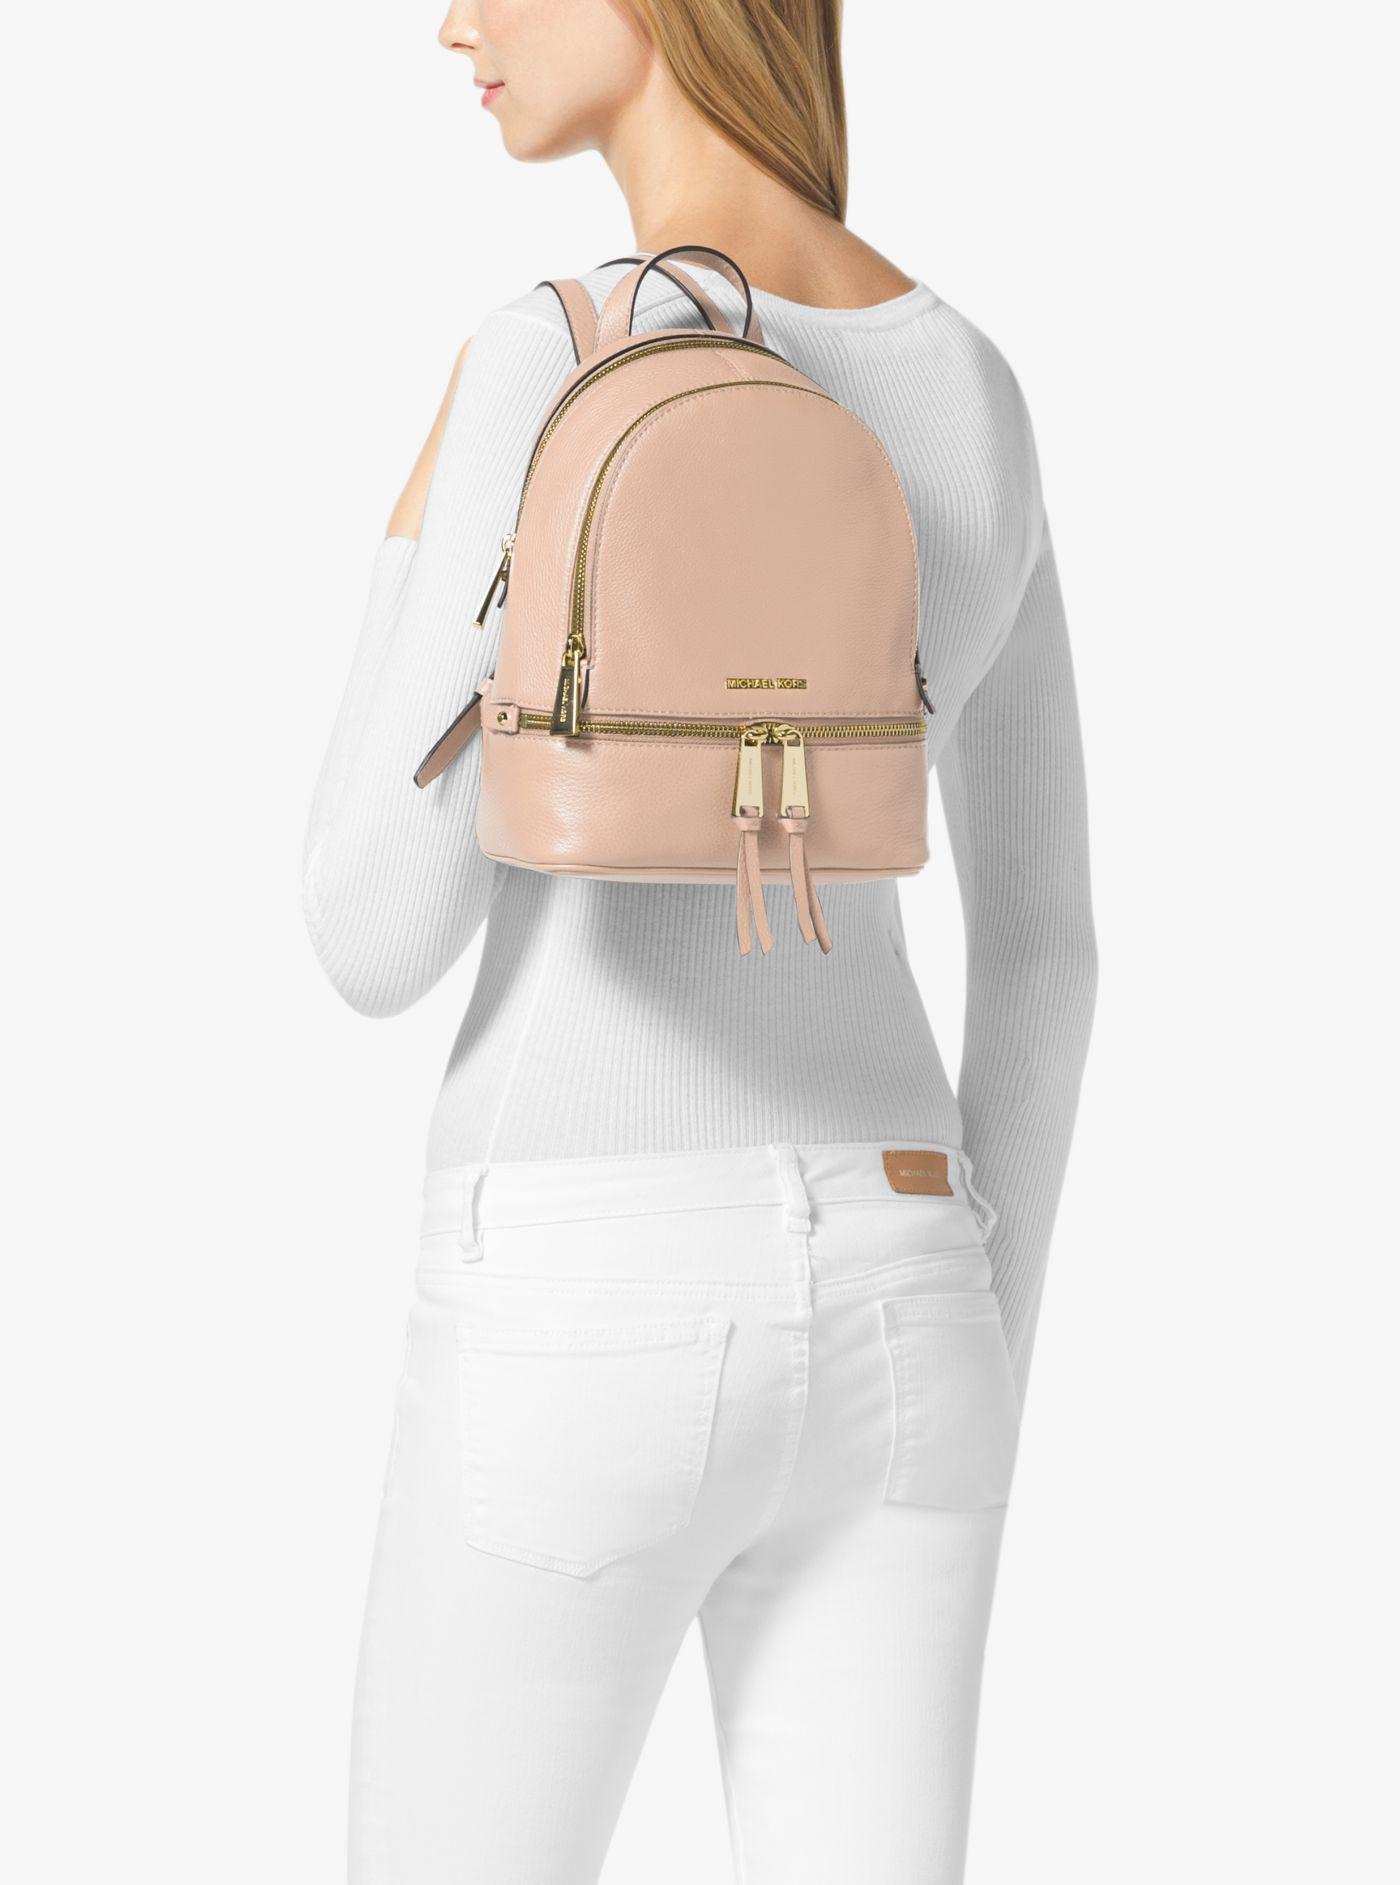 f93fad53f046 Michael Kors Rhea Extra-small Leather Backpack in Pink - Lyst